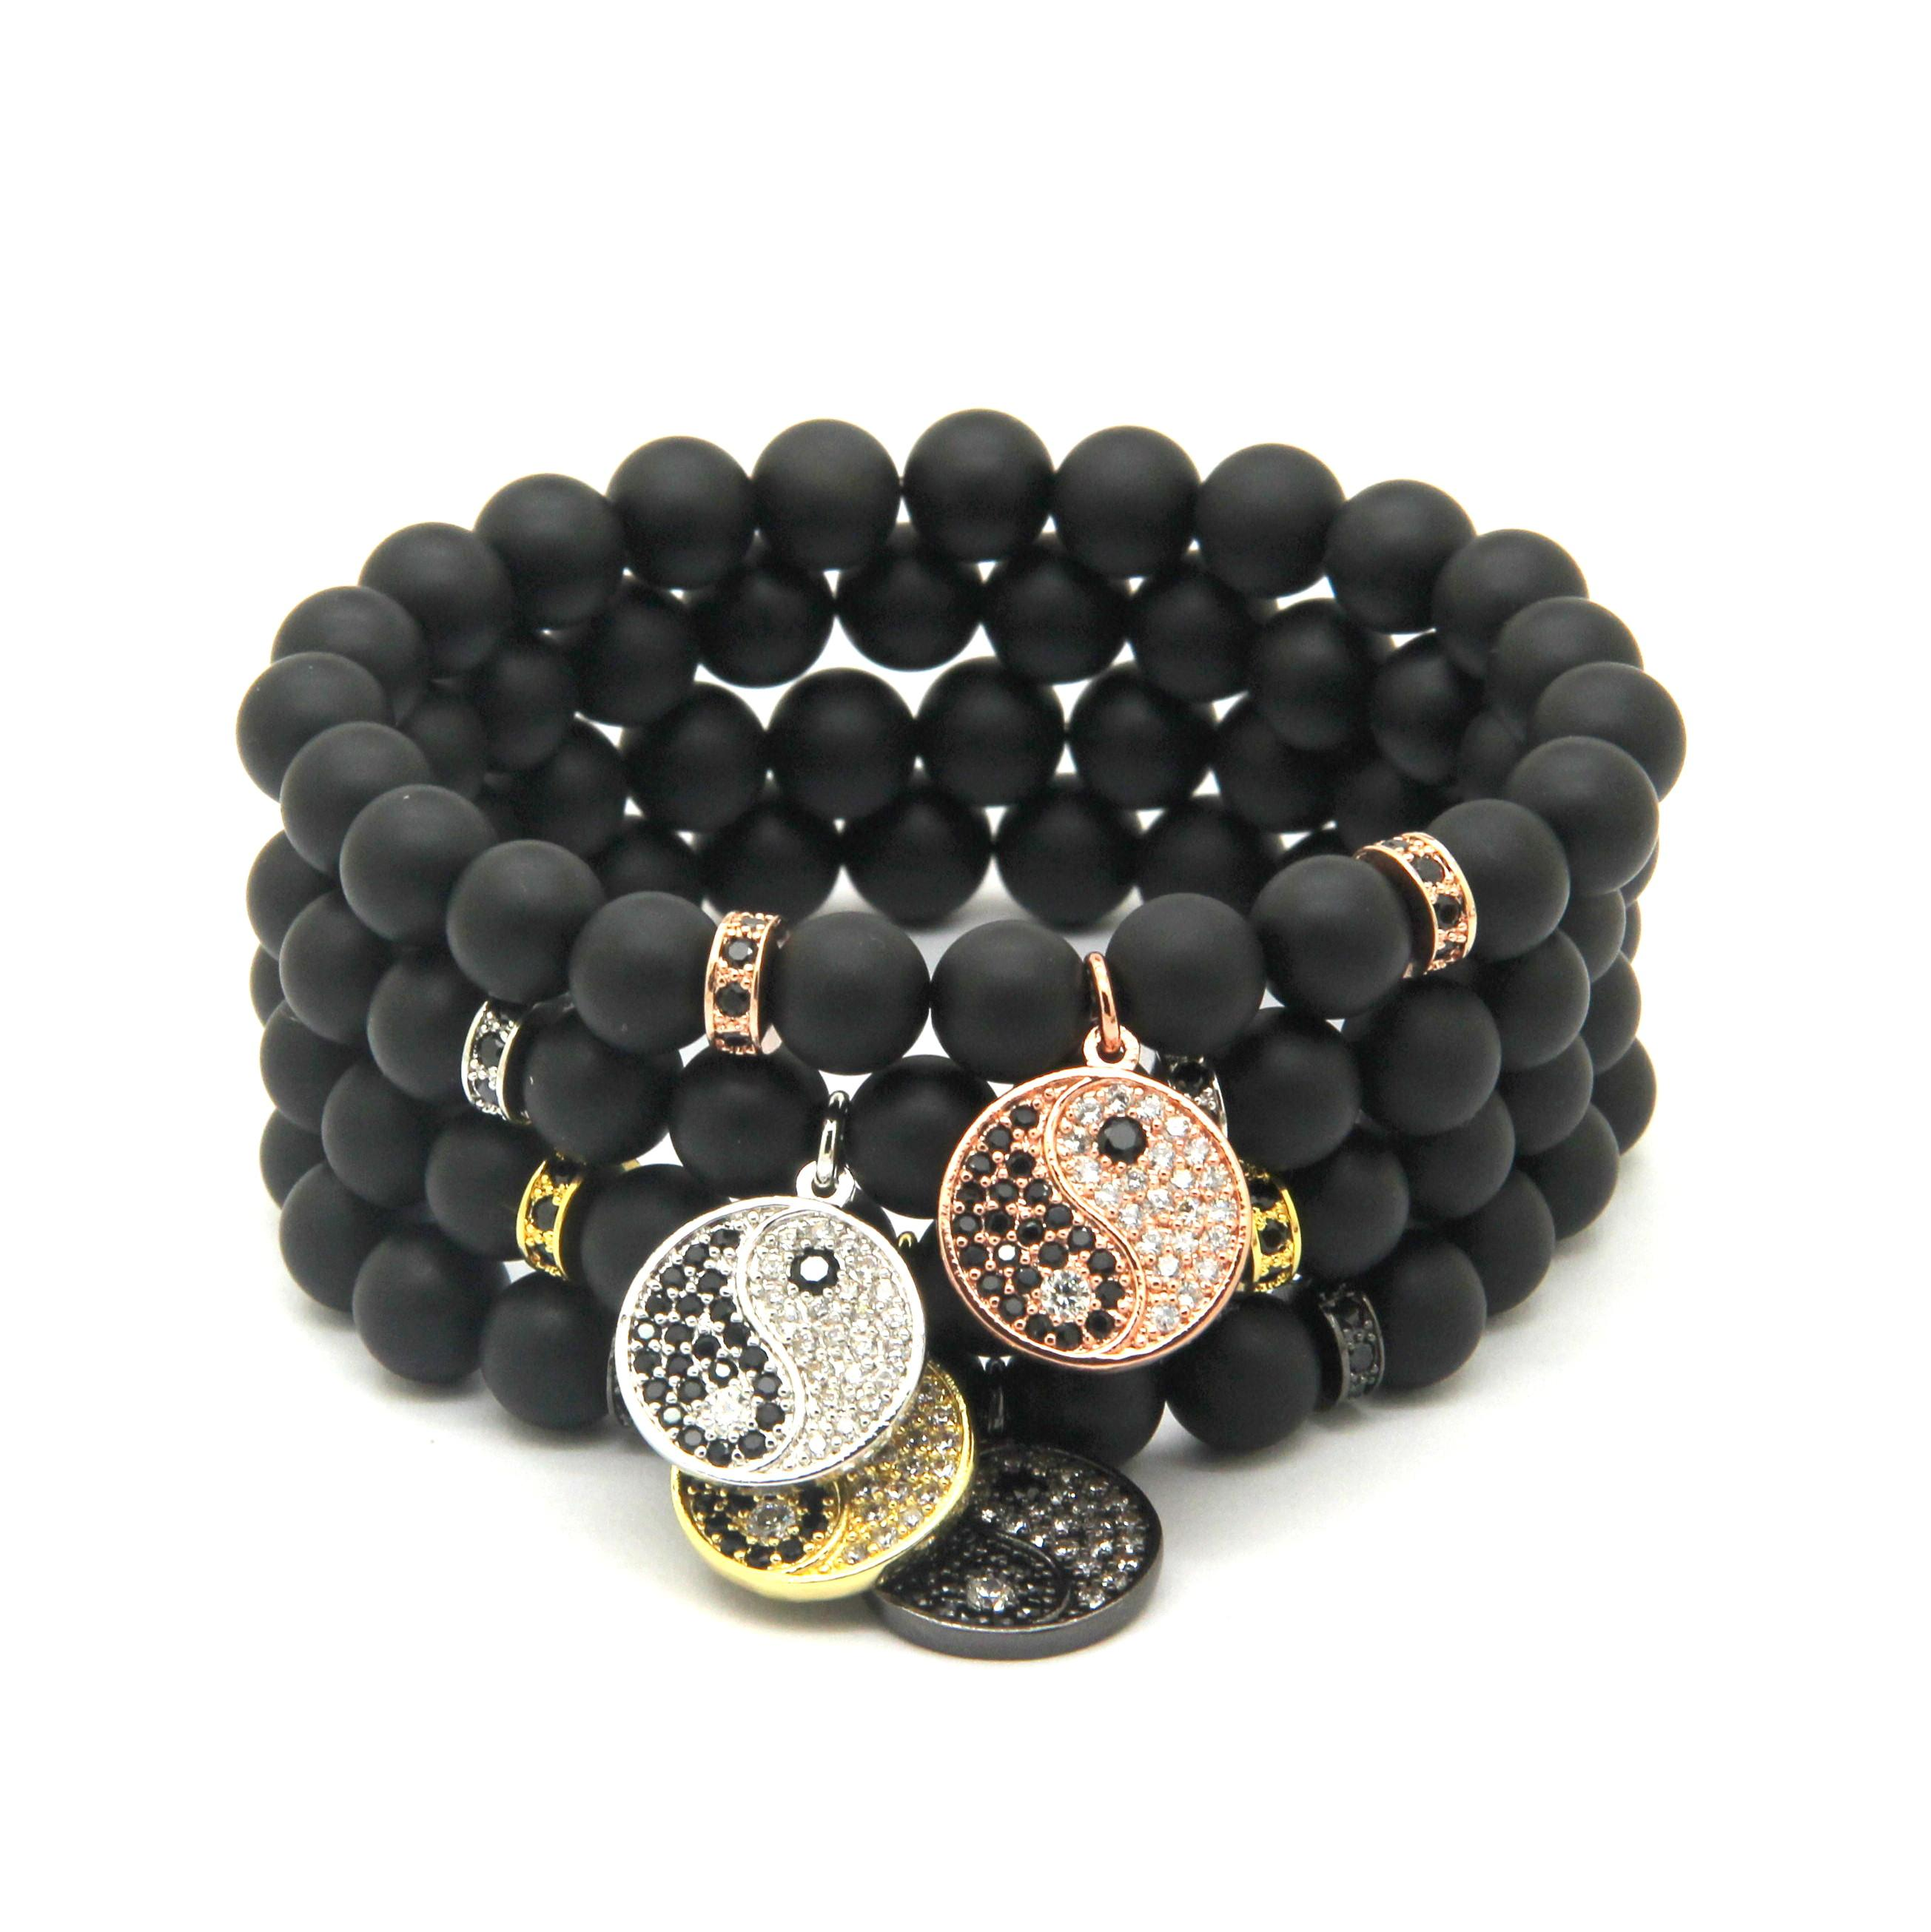 bracelets and kc products bracelet precious stone grey stretch silver semi final black matte collections karlas in